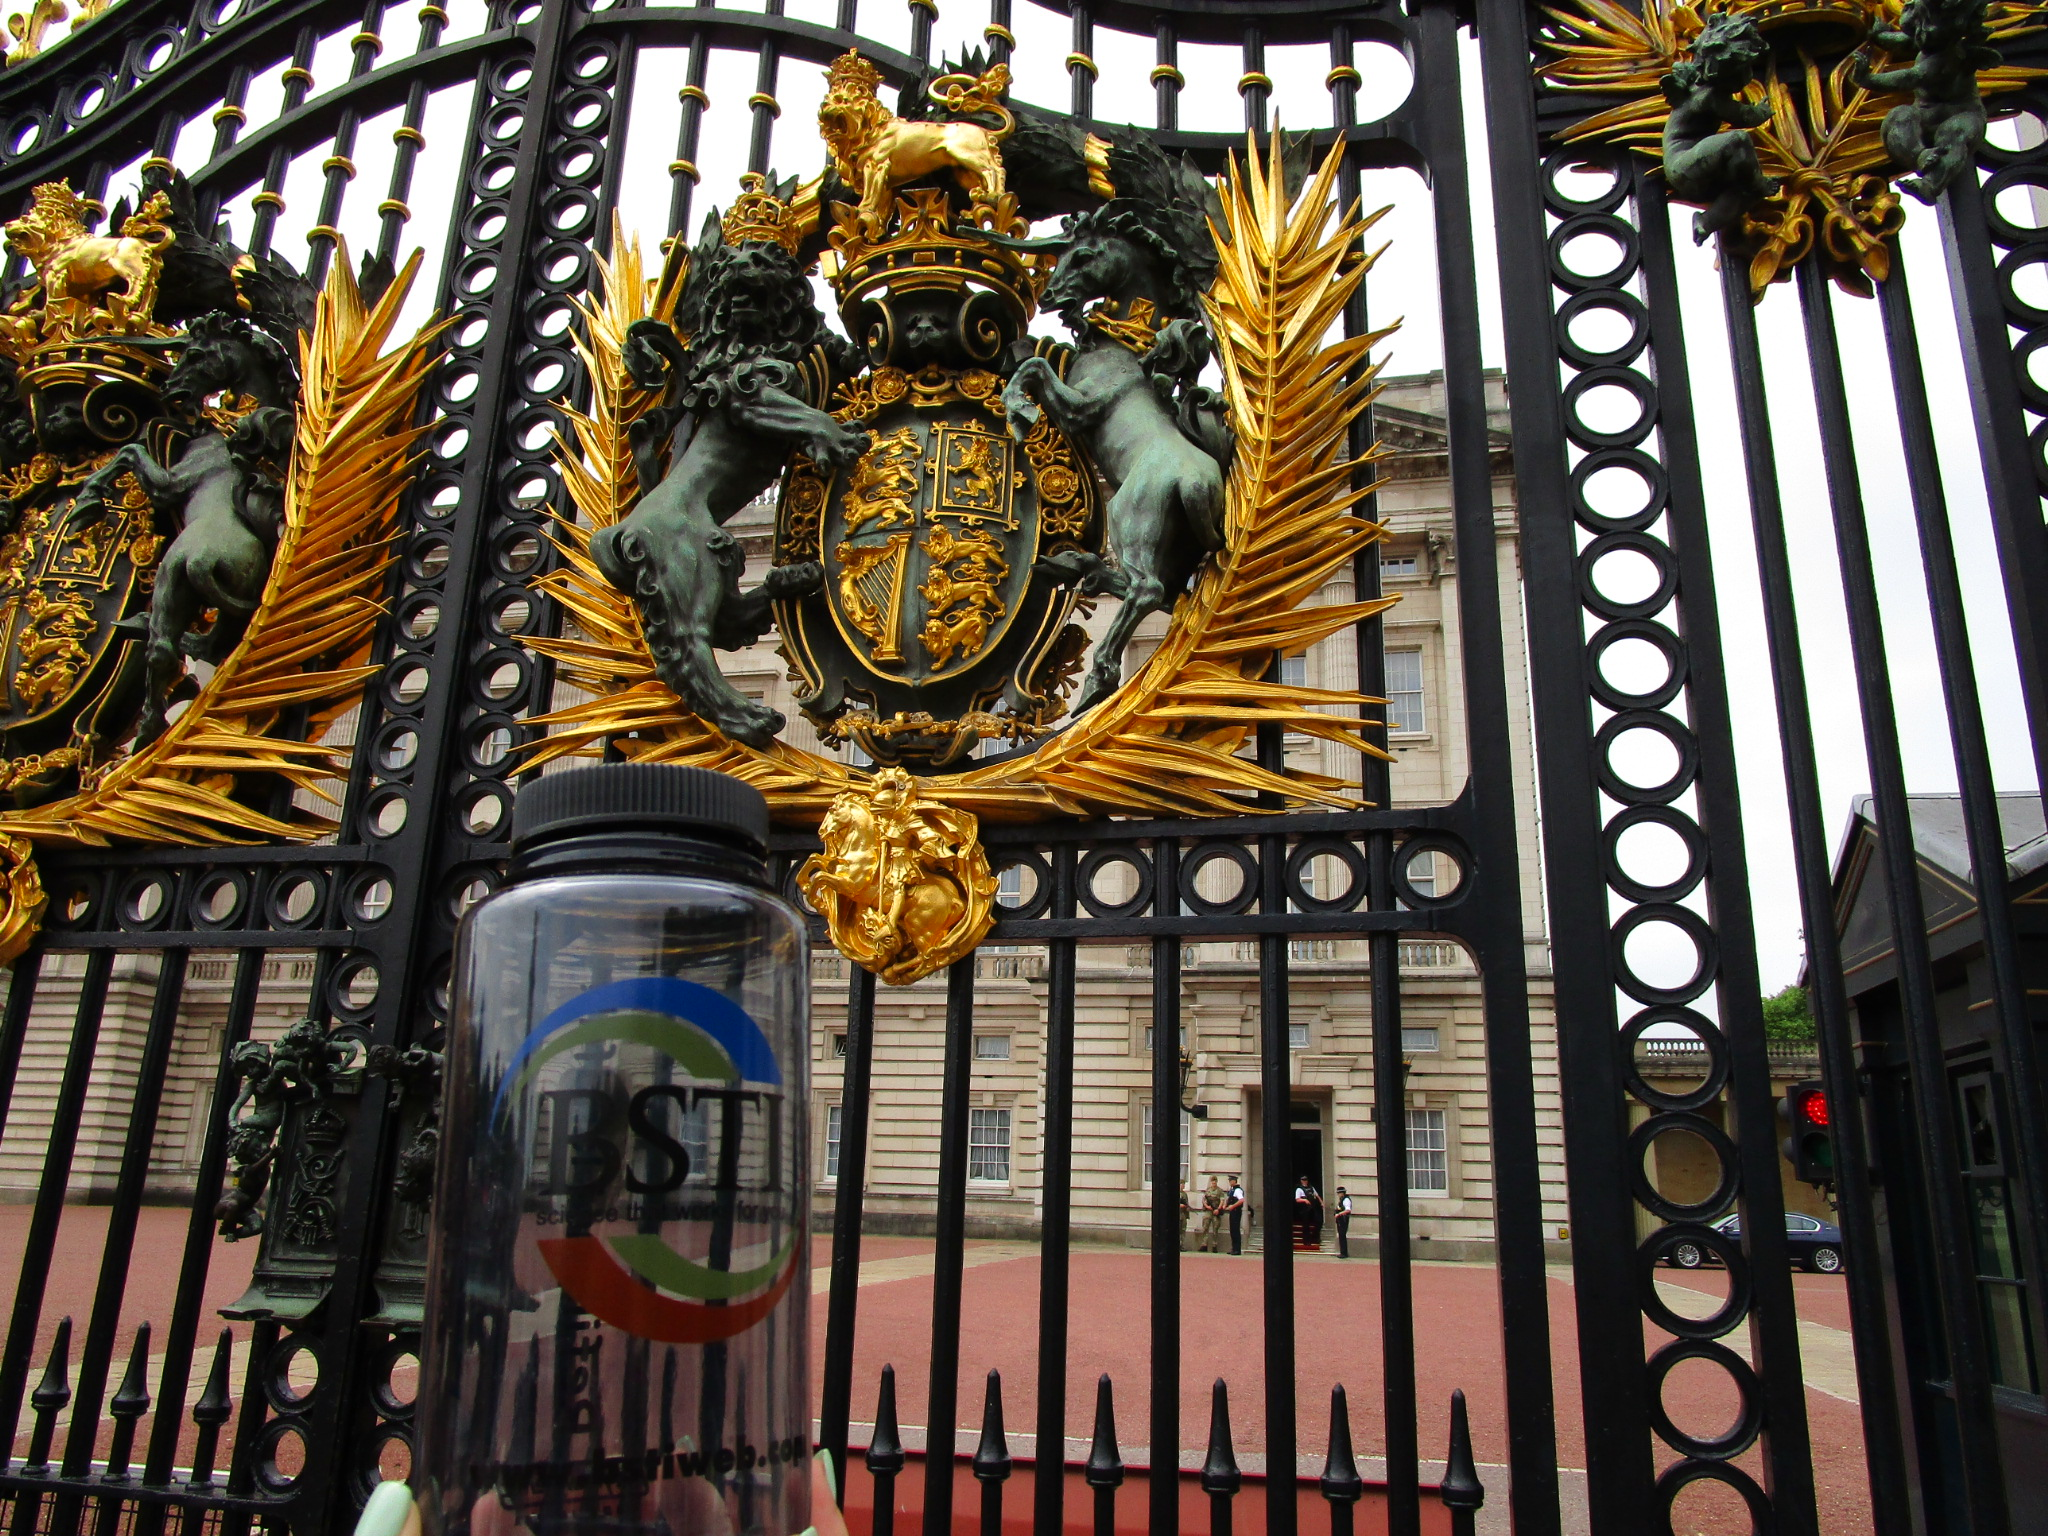 Knocking on the gates of Buckingham Palace